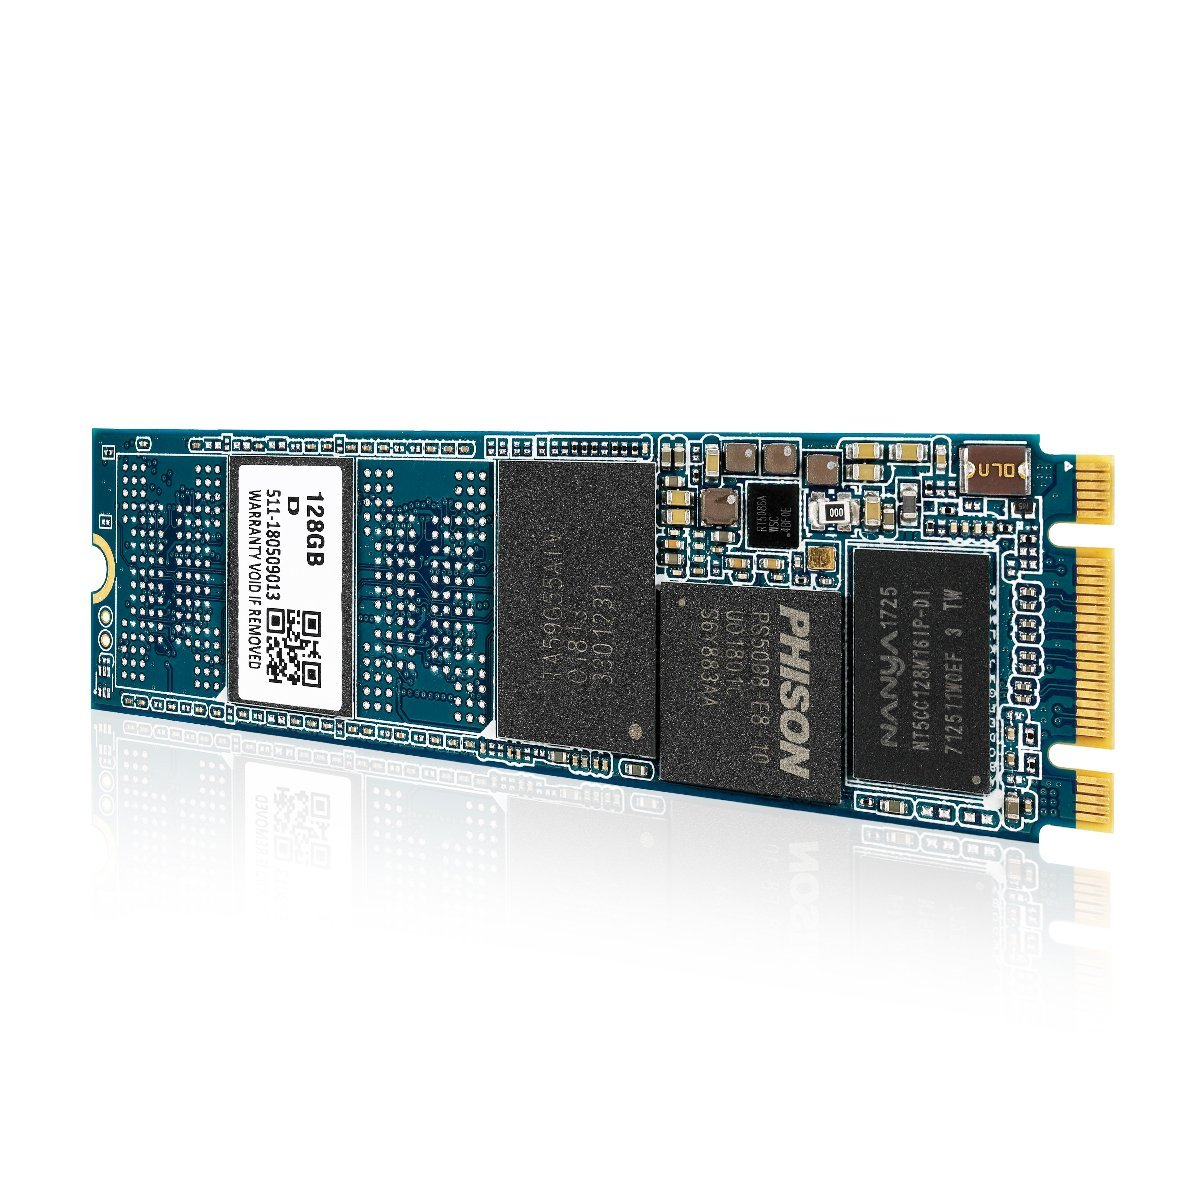 128GB SSD 3D NAND M.2 2280 PCIe NVME INLAND